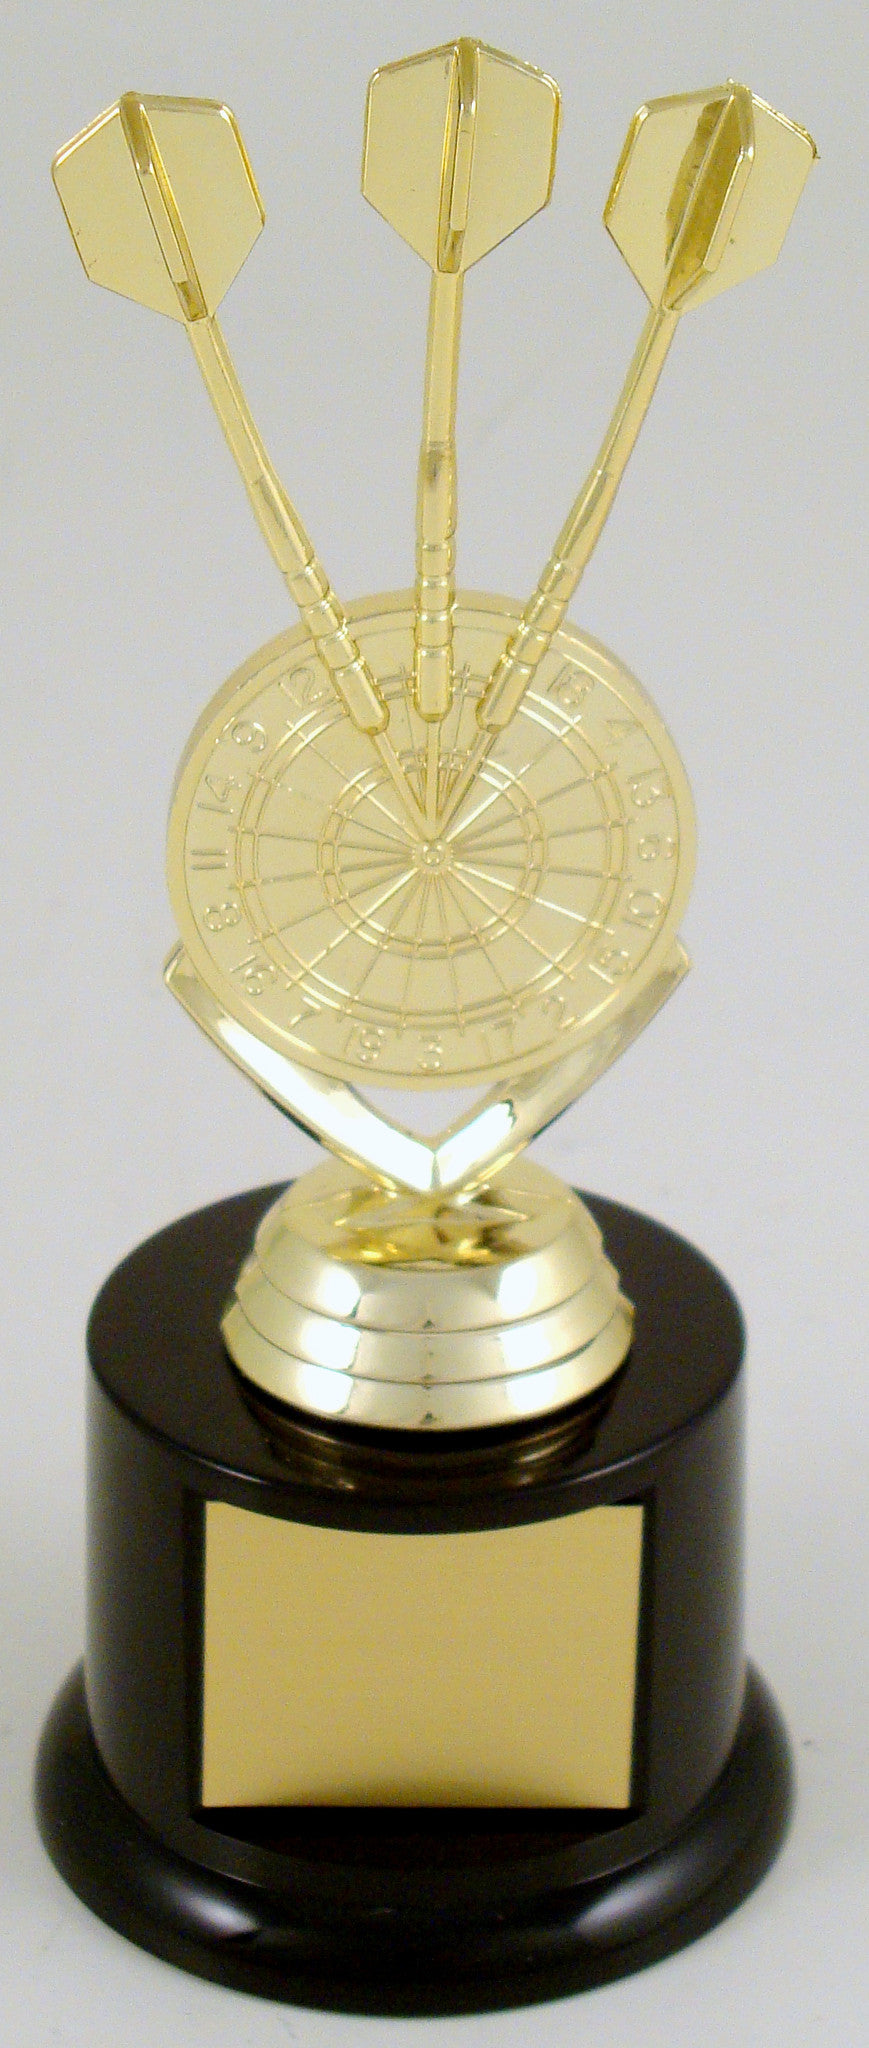 Darts Triple Bullseye Trophy On Black Round Base-Trophy-Schoppy's Since 1921